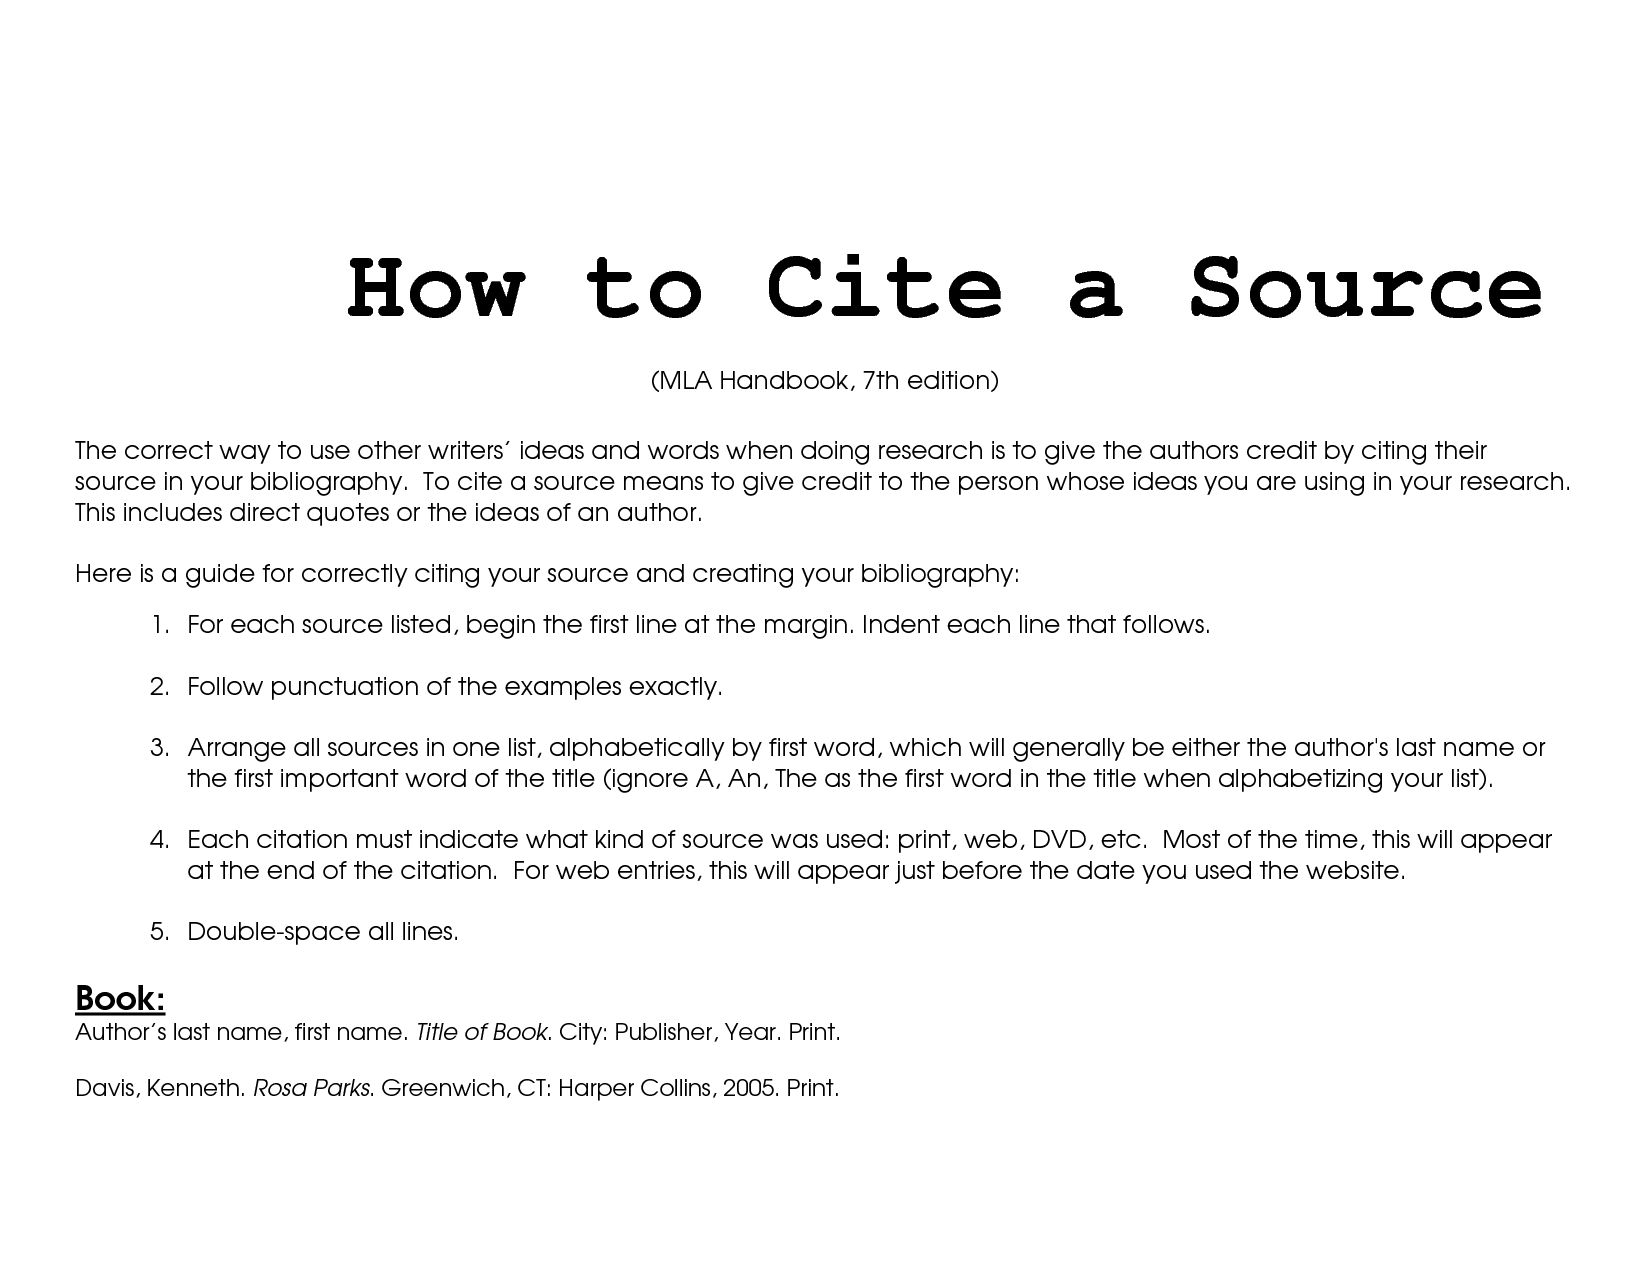 Citing sources in mla style enc1102libraryinstruction libguides cite your sources mla retrieved from httpdocstocdocs132890878cite your sources mla ccuart Images